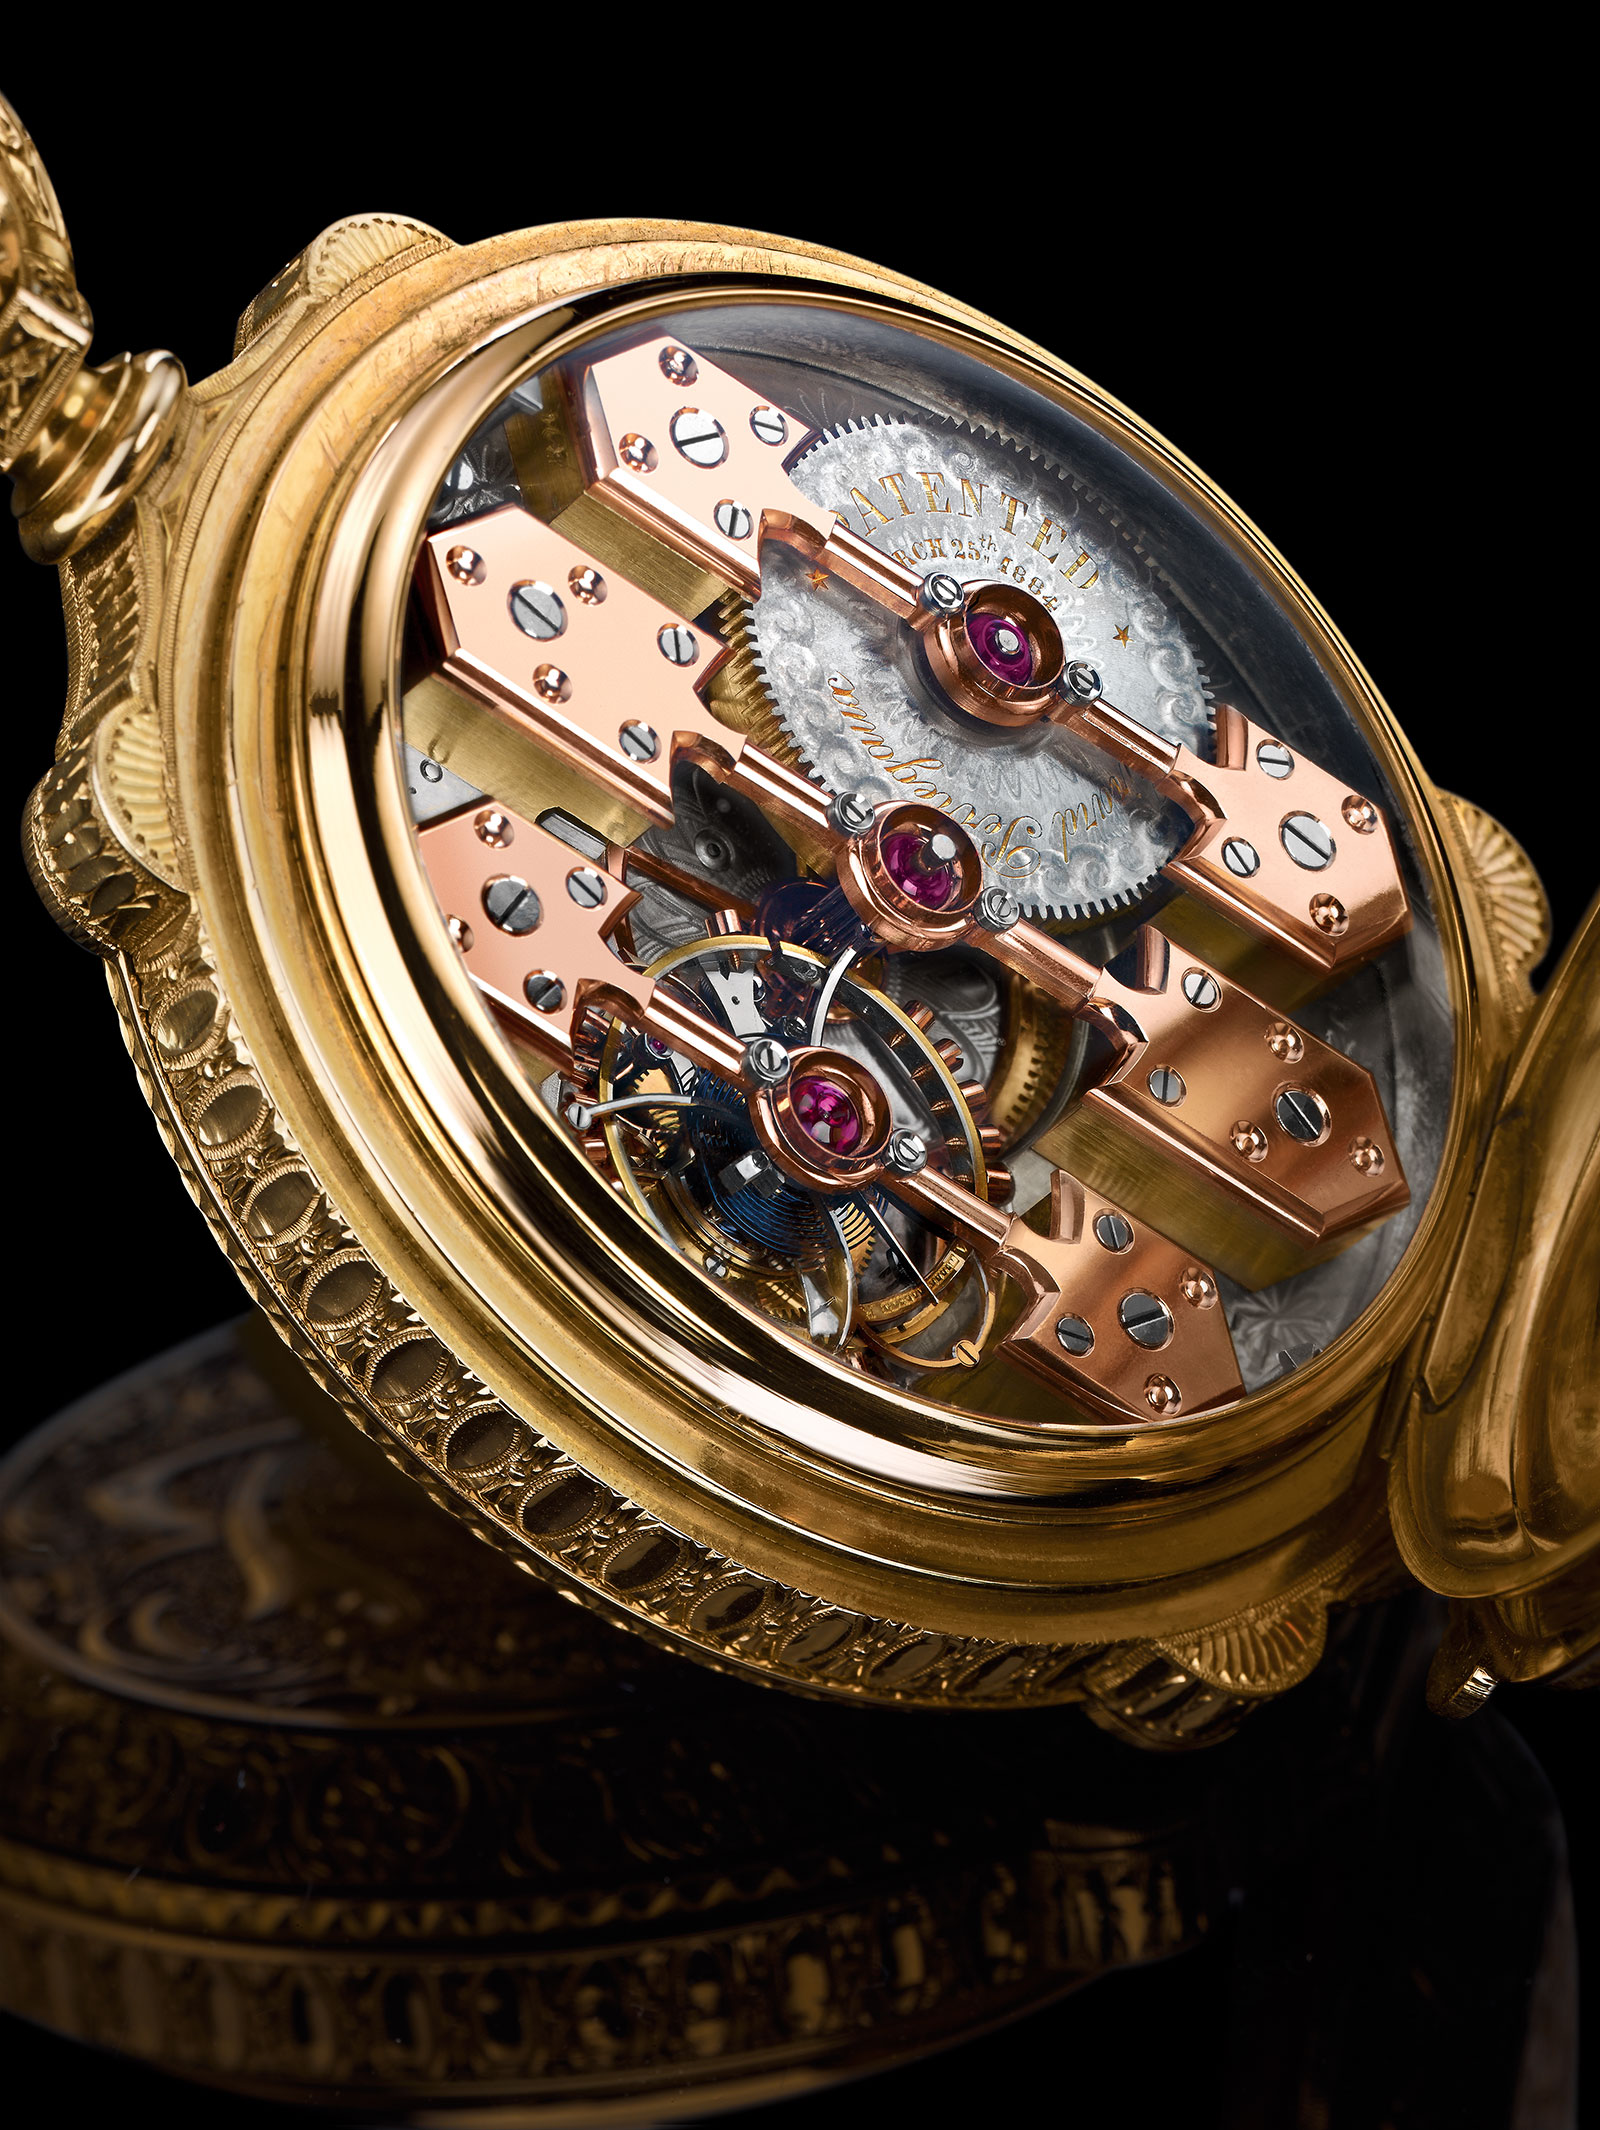 Girard-Perregaux La Esmeralda pocket watch